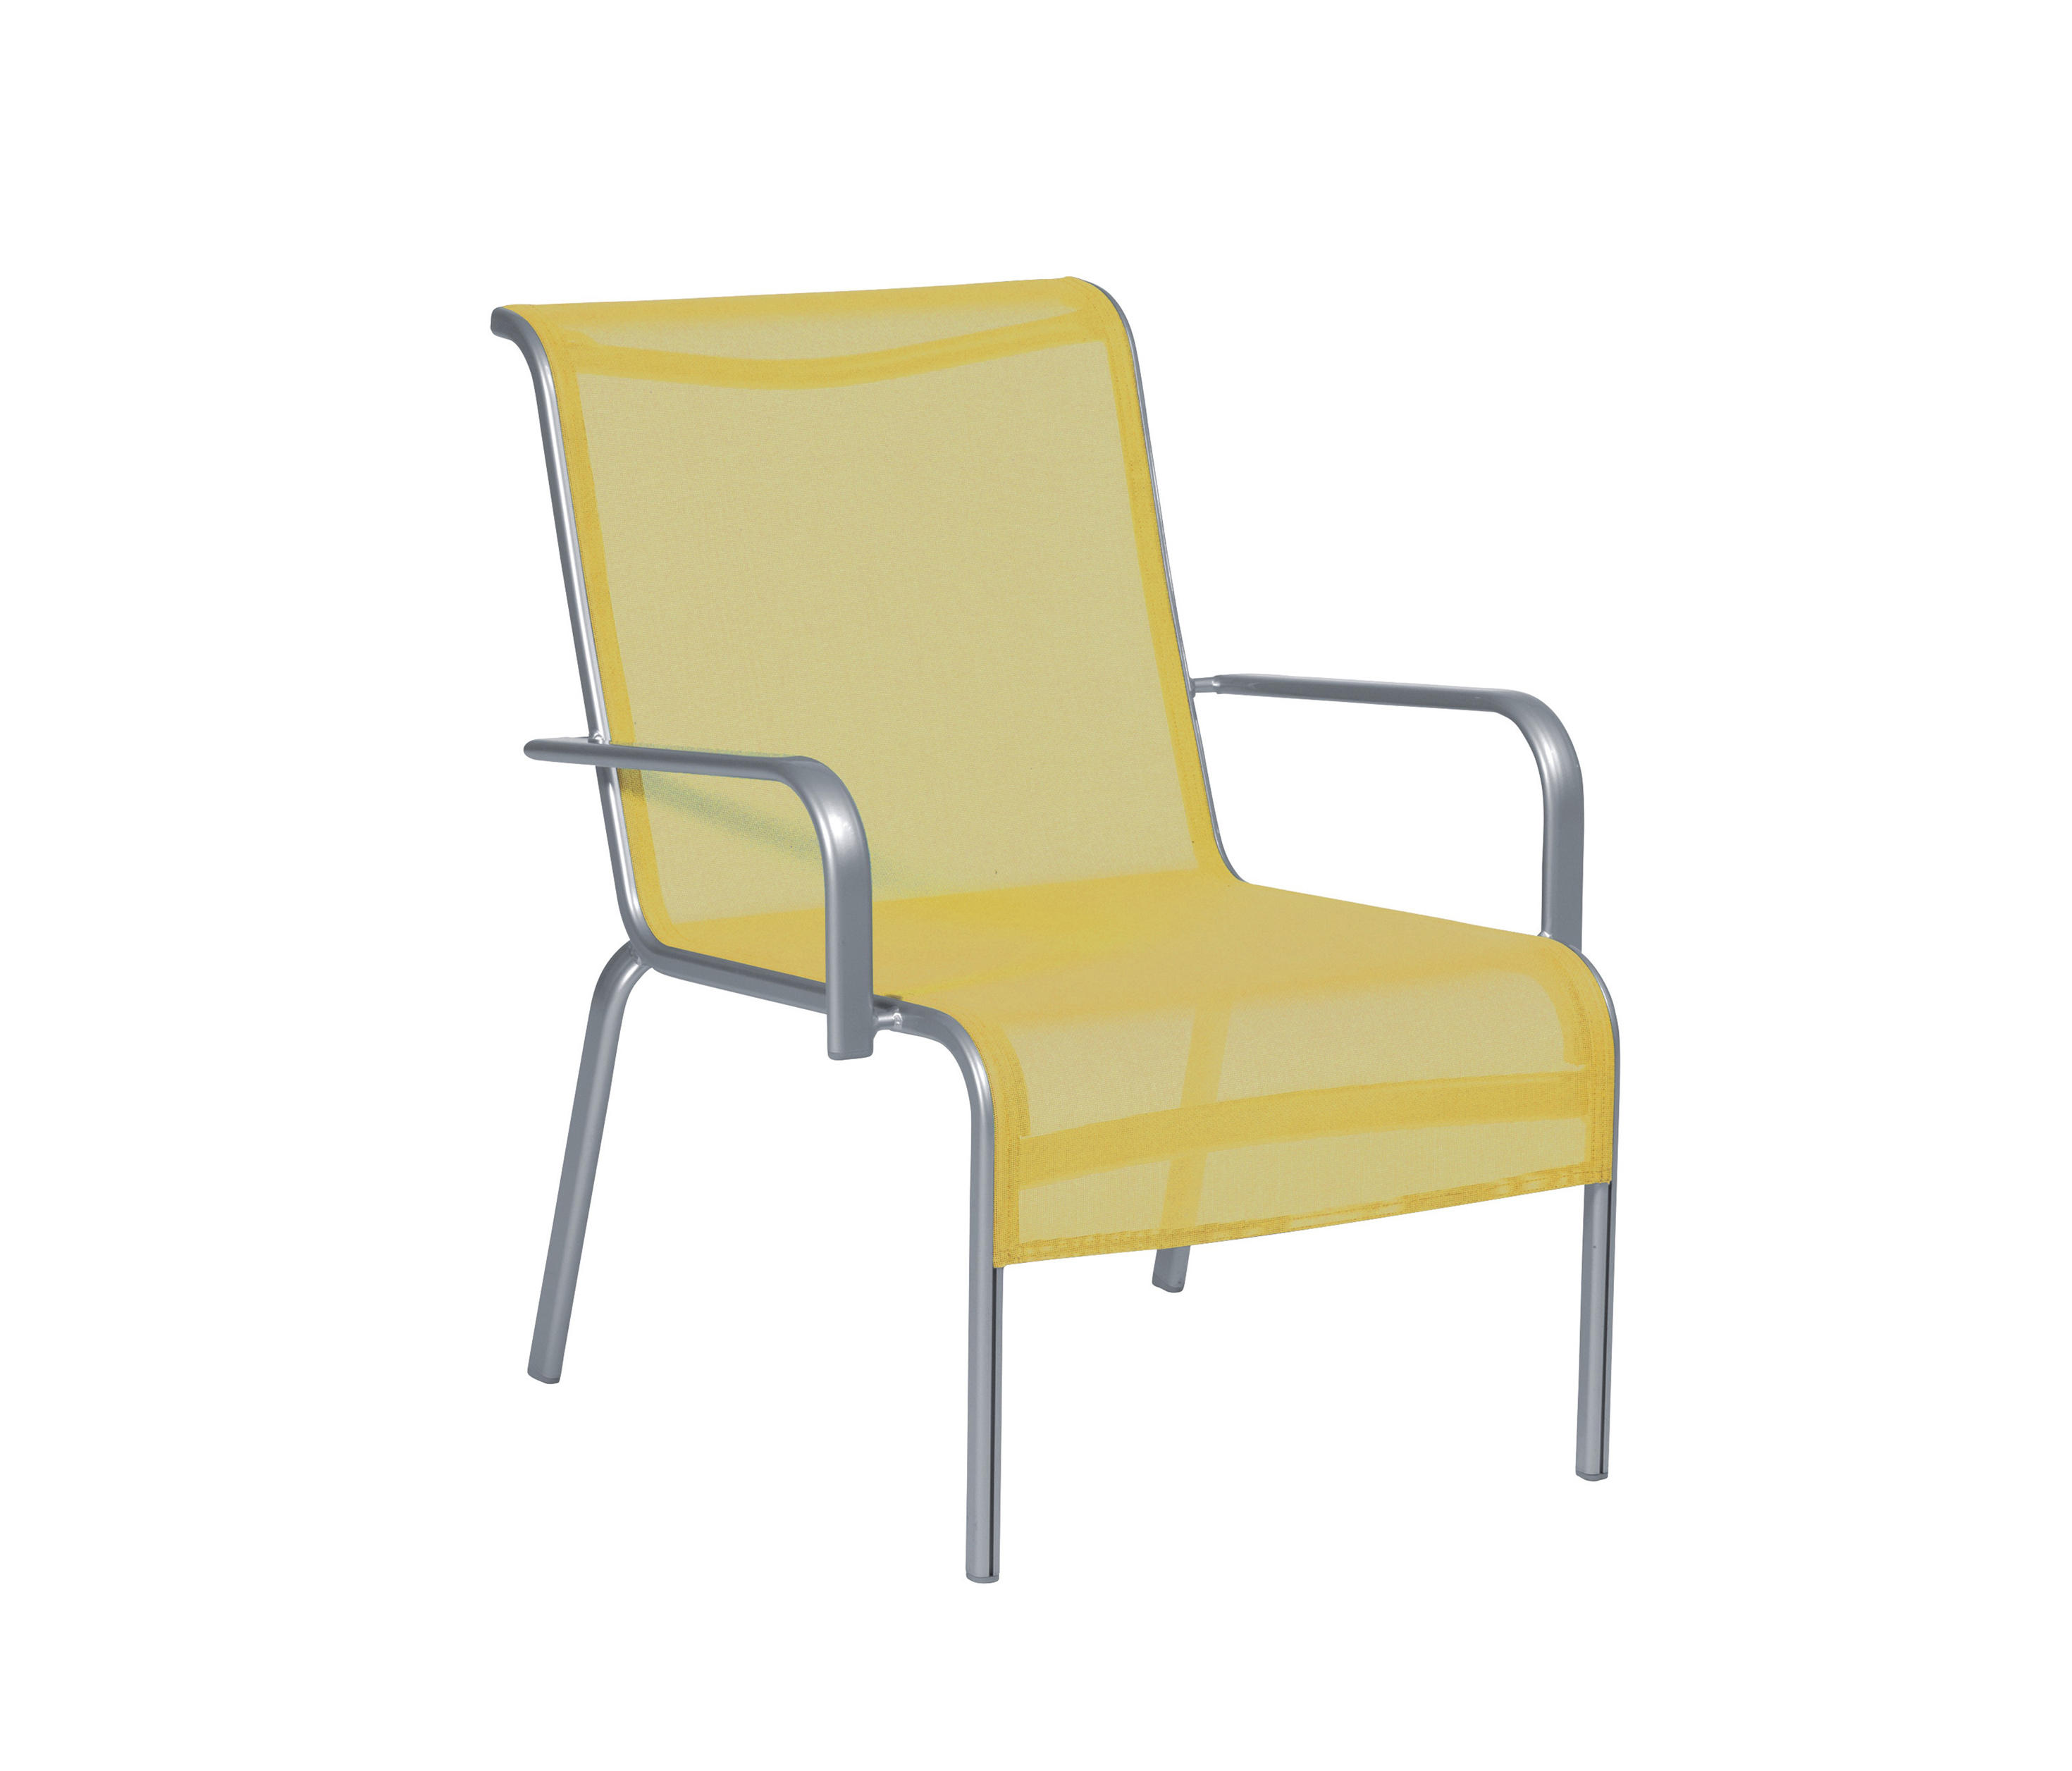 Viva Mexico Chair Acapulco Sessel Viva Mexico Chair With Acapulco Sessel X